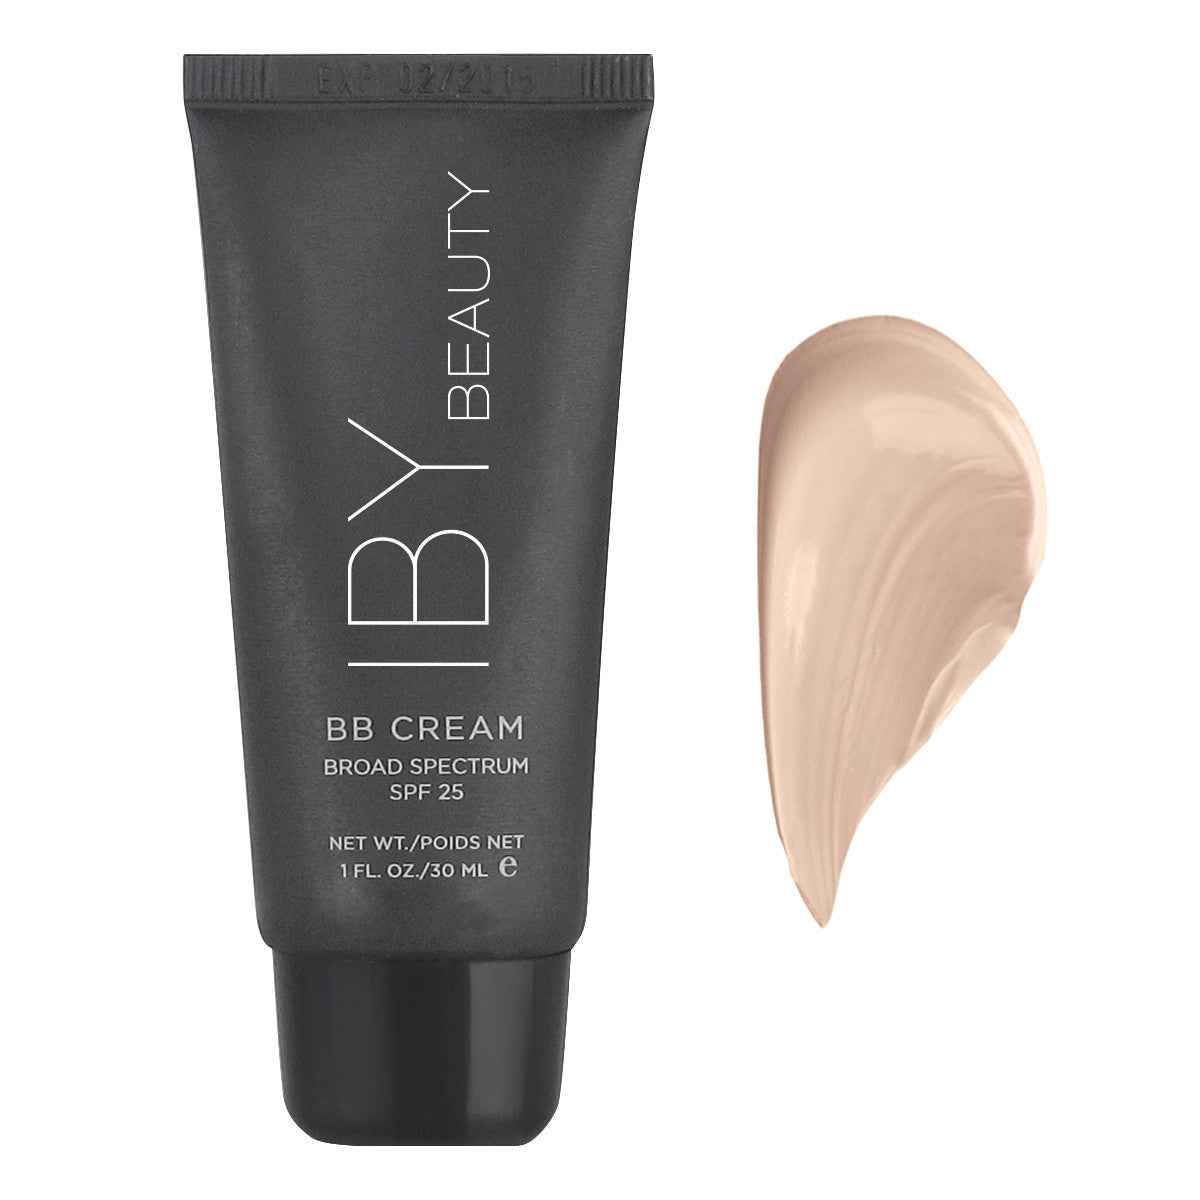 BB Cream SPF25 - Matched product